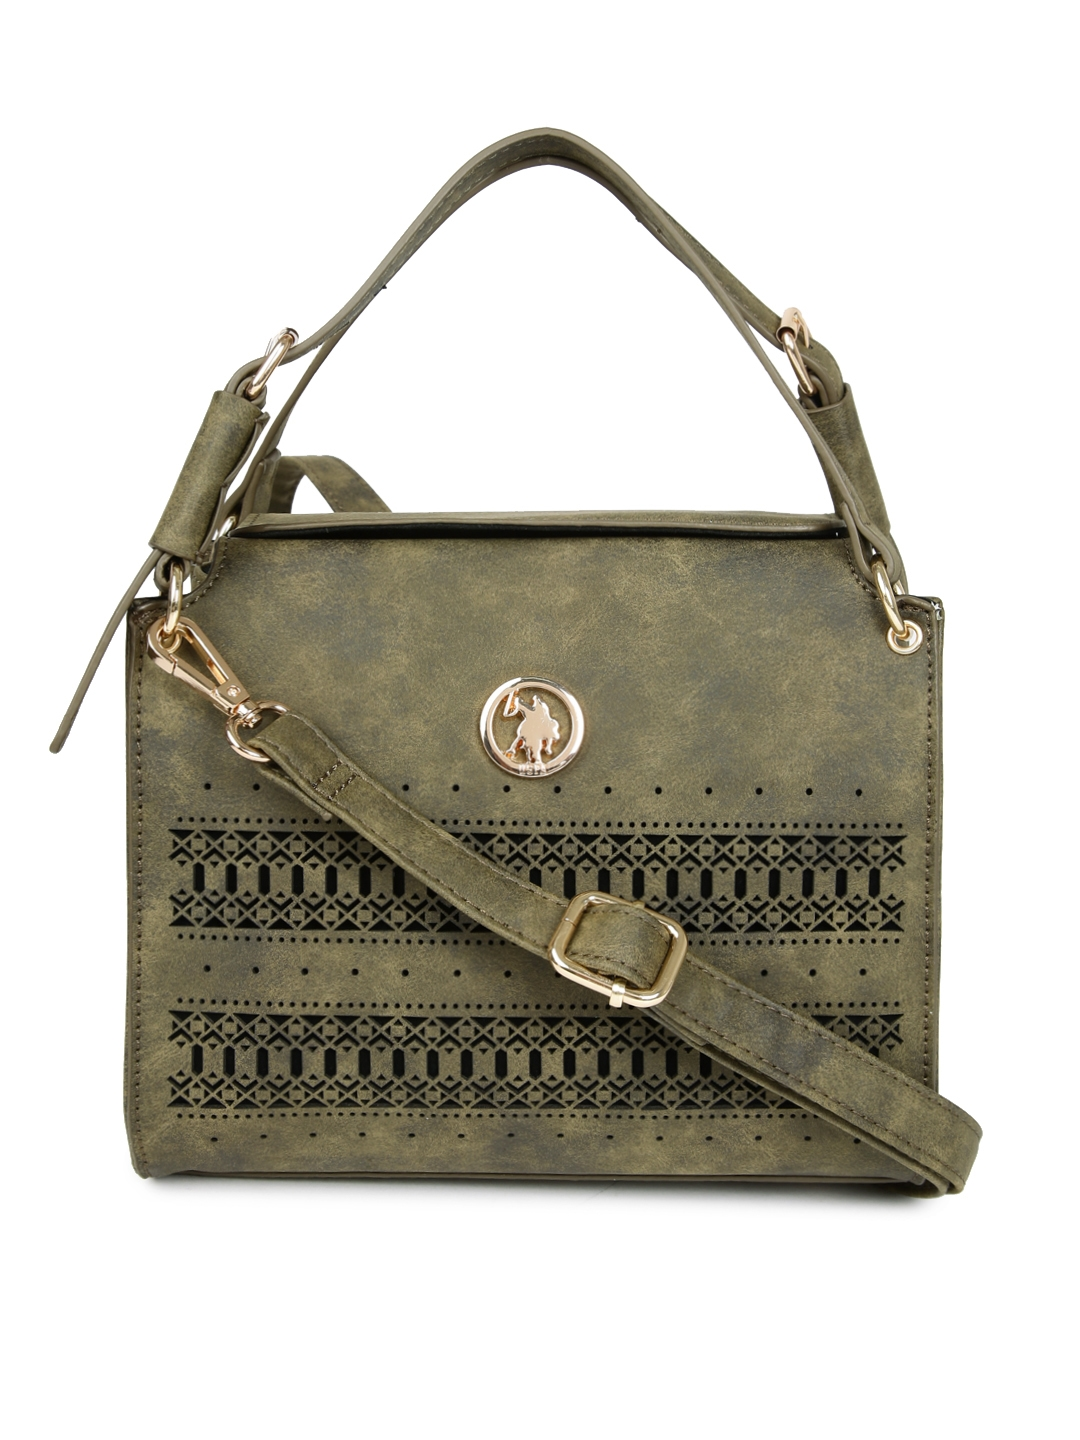 fda63c1ac18a Buy U.S. Polo Assn. Women Olive Green Solid Handheld Bag With Cut ...